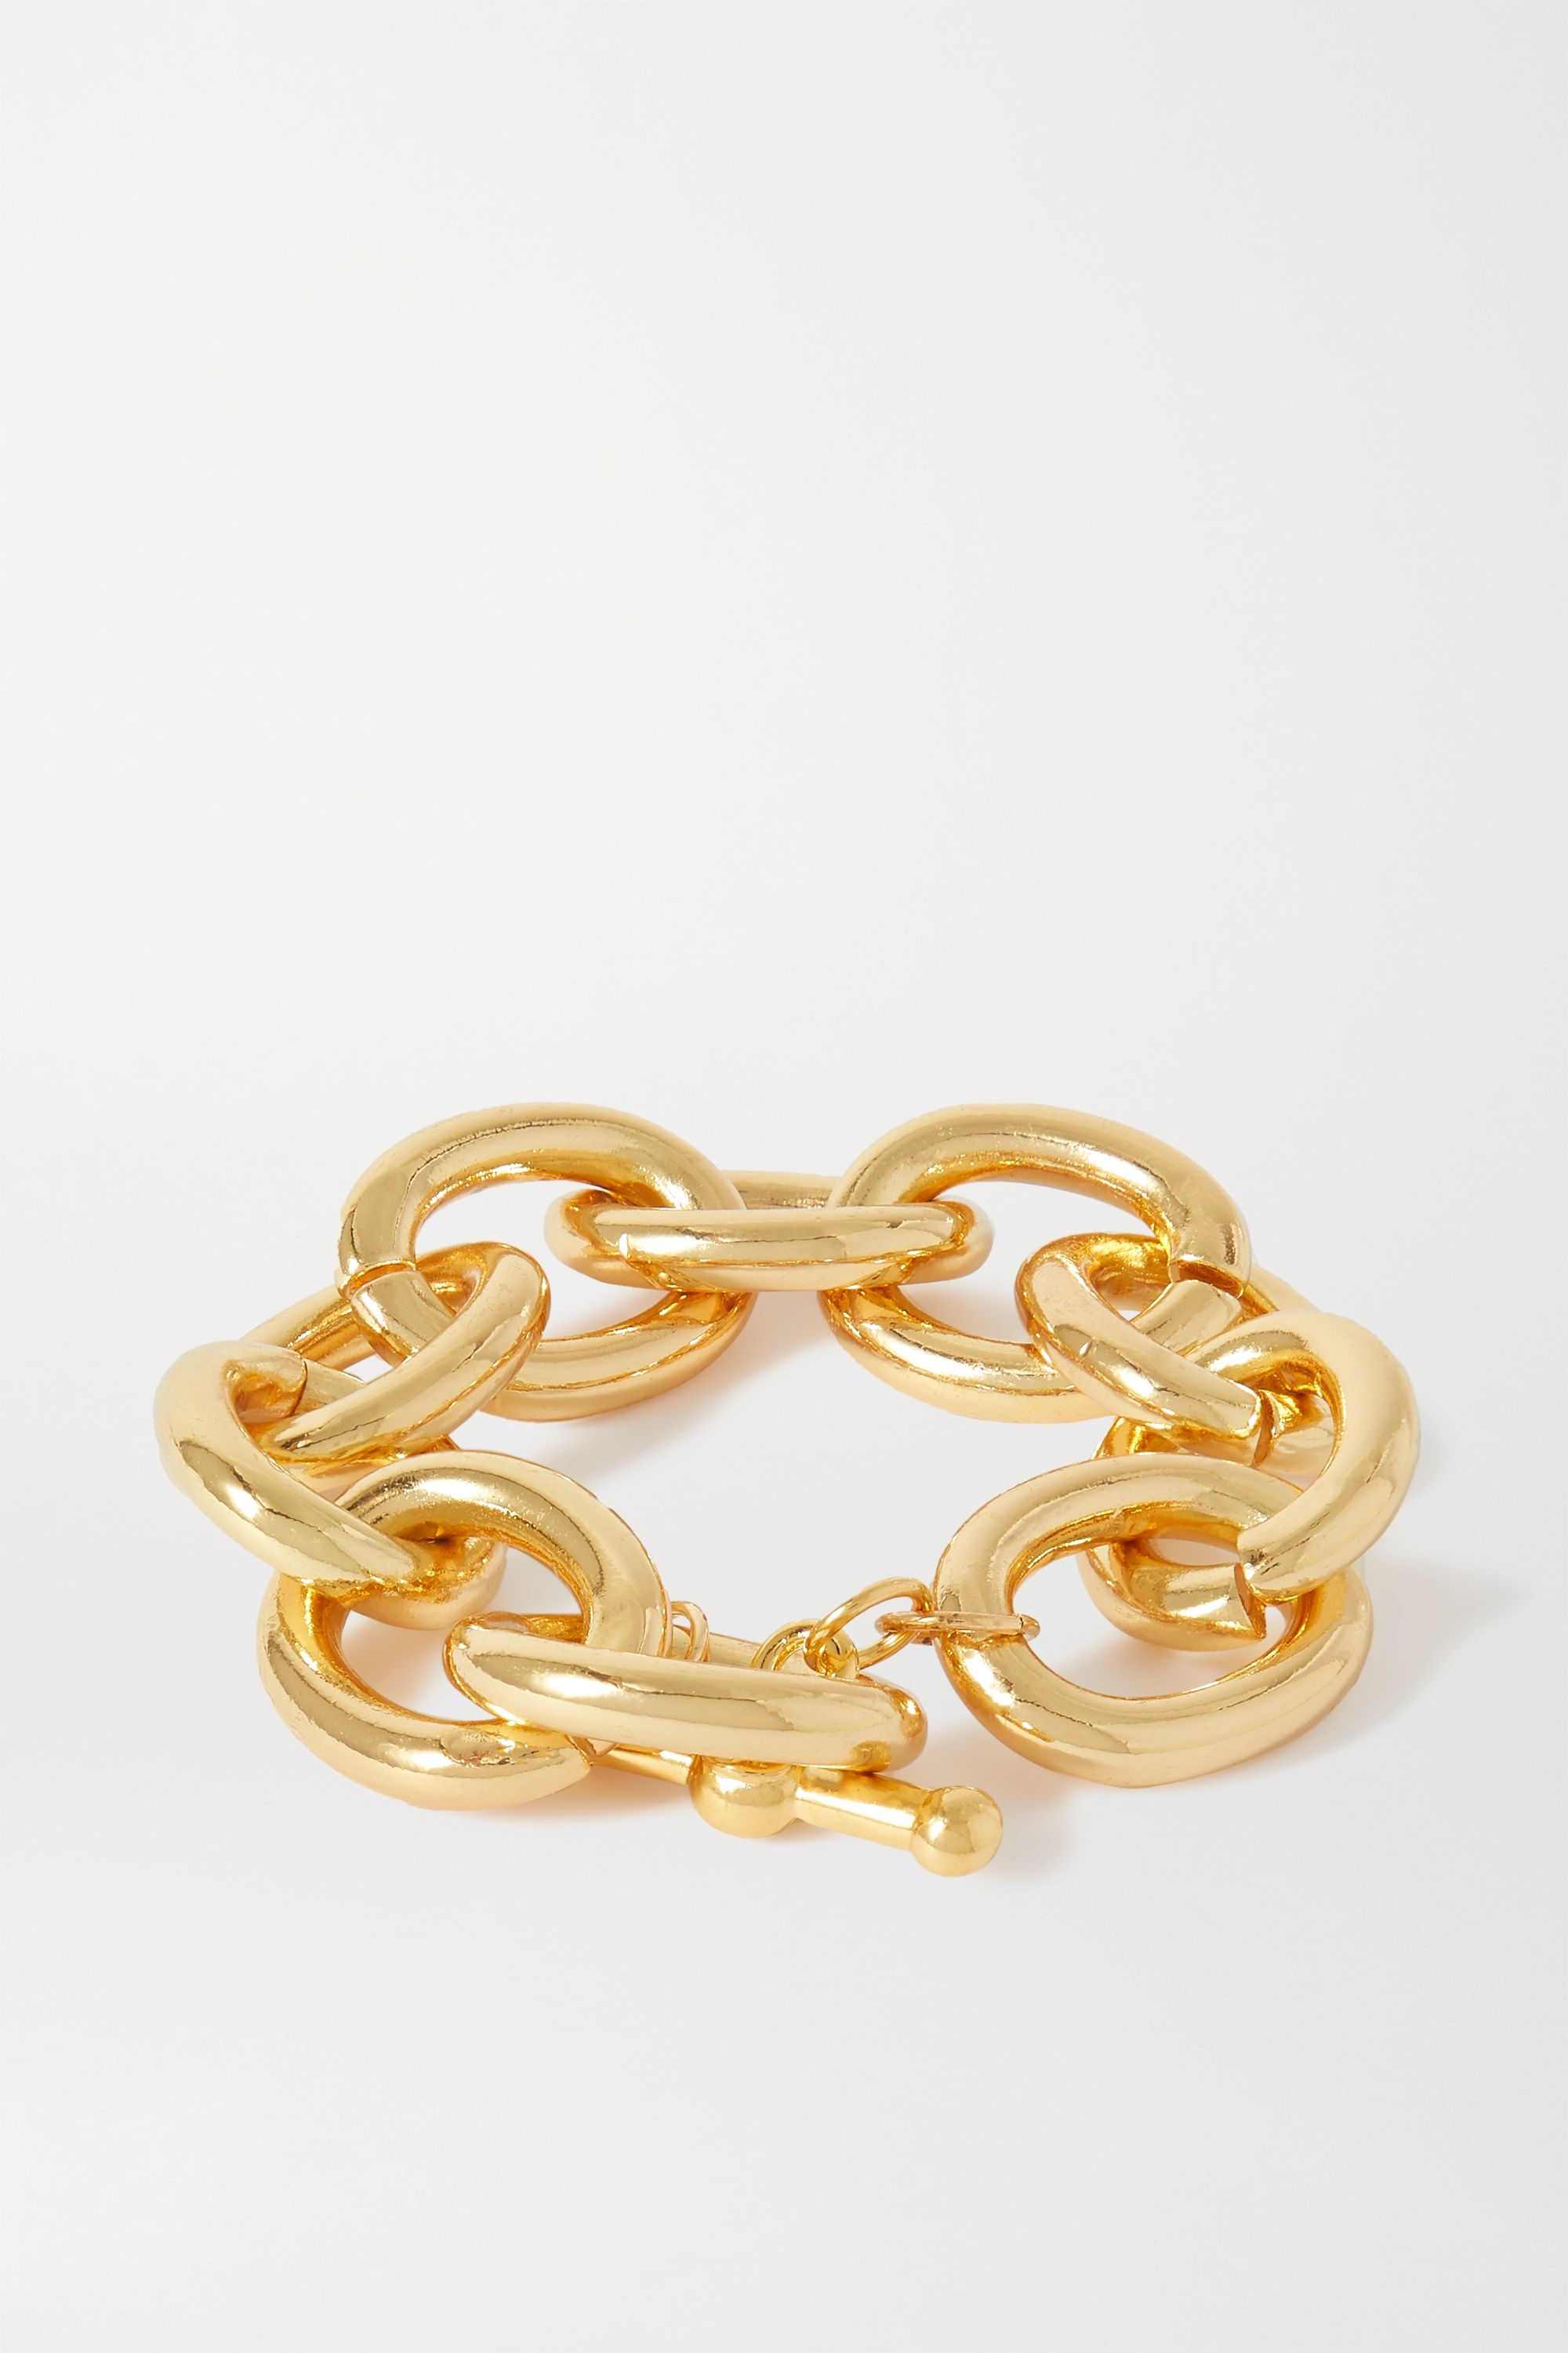 Kenneth Jay Lane Bracelet doré